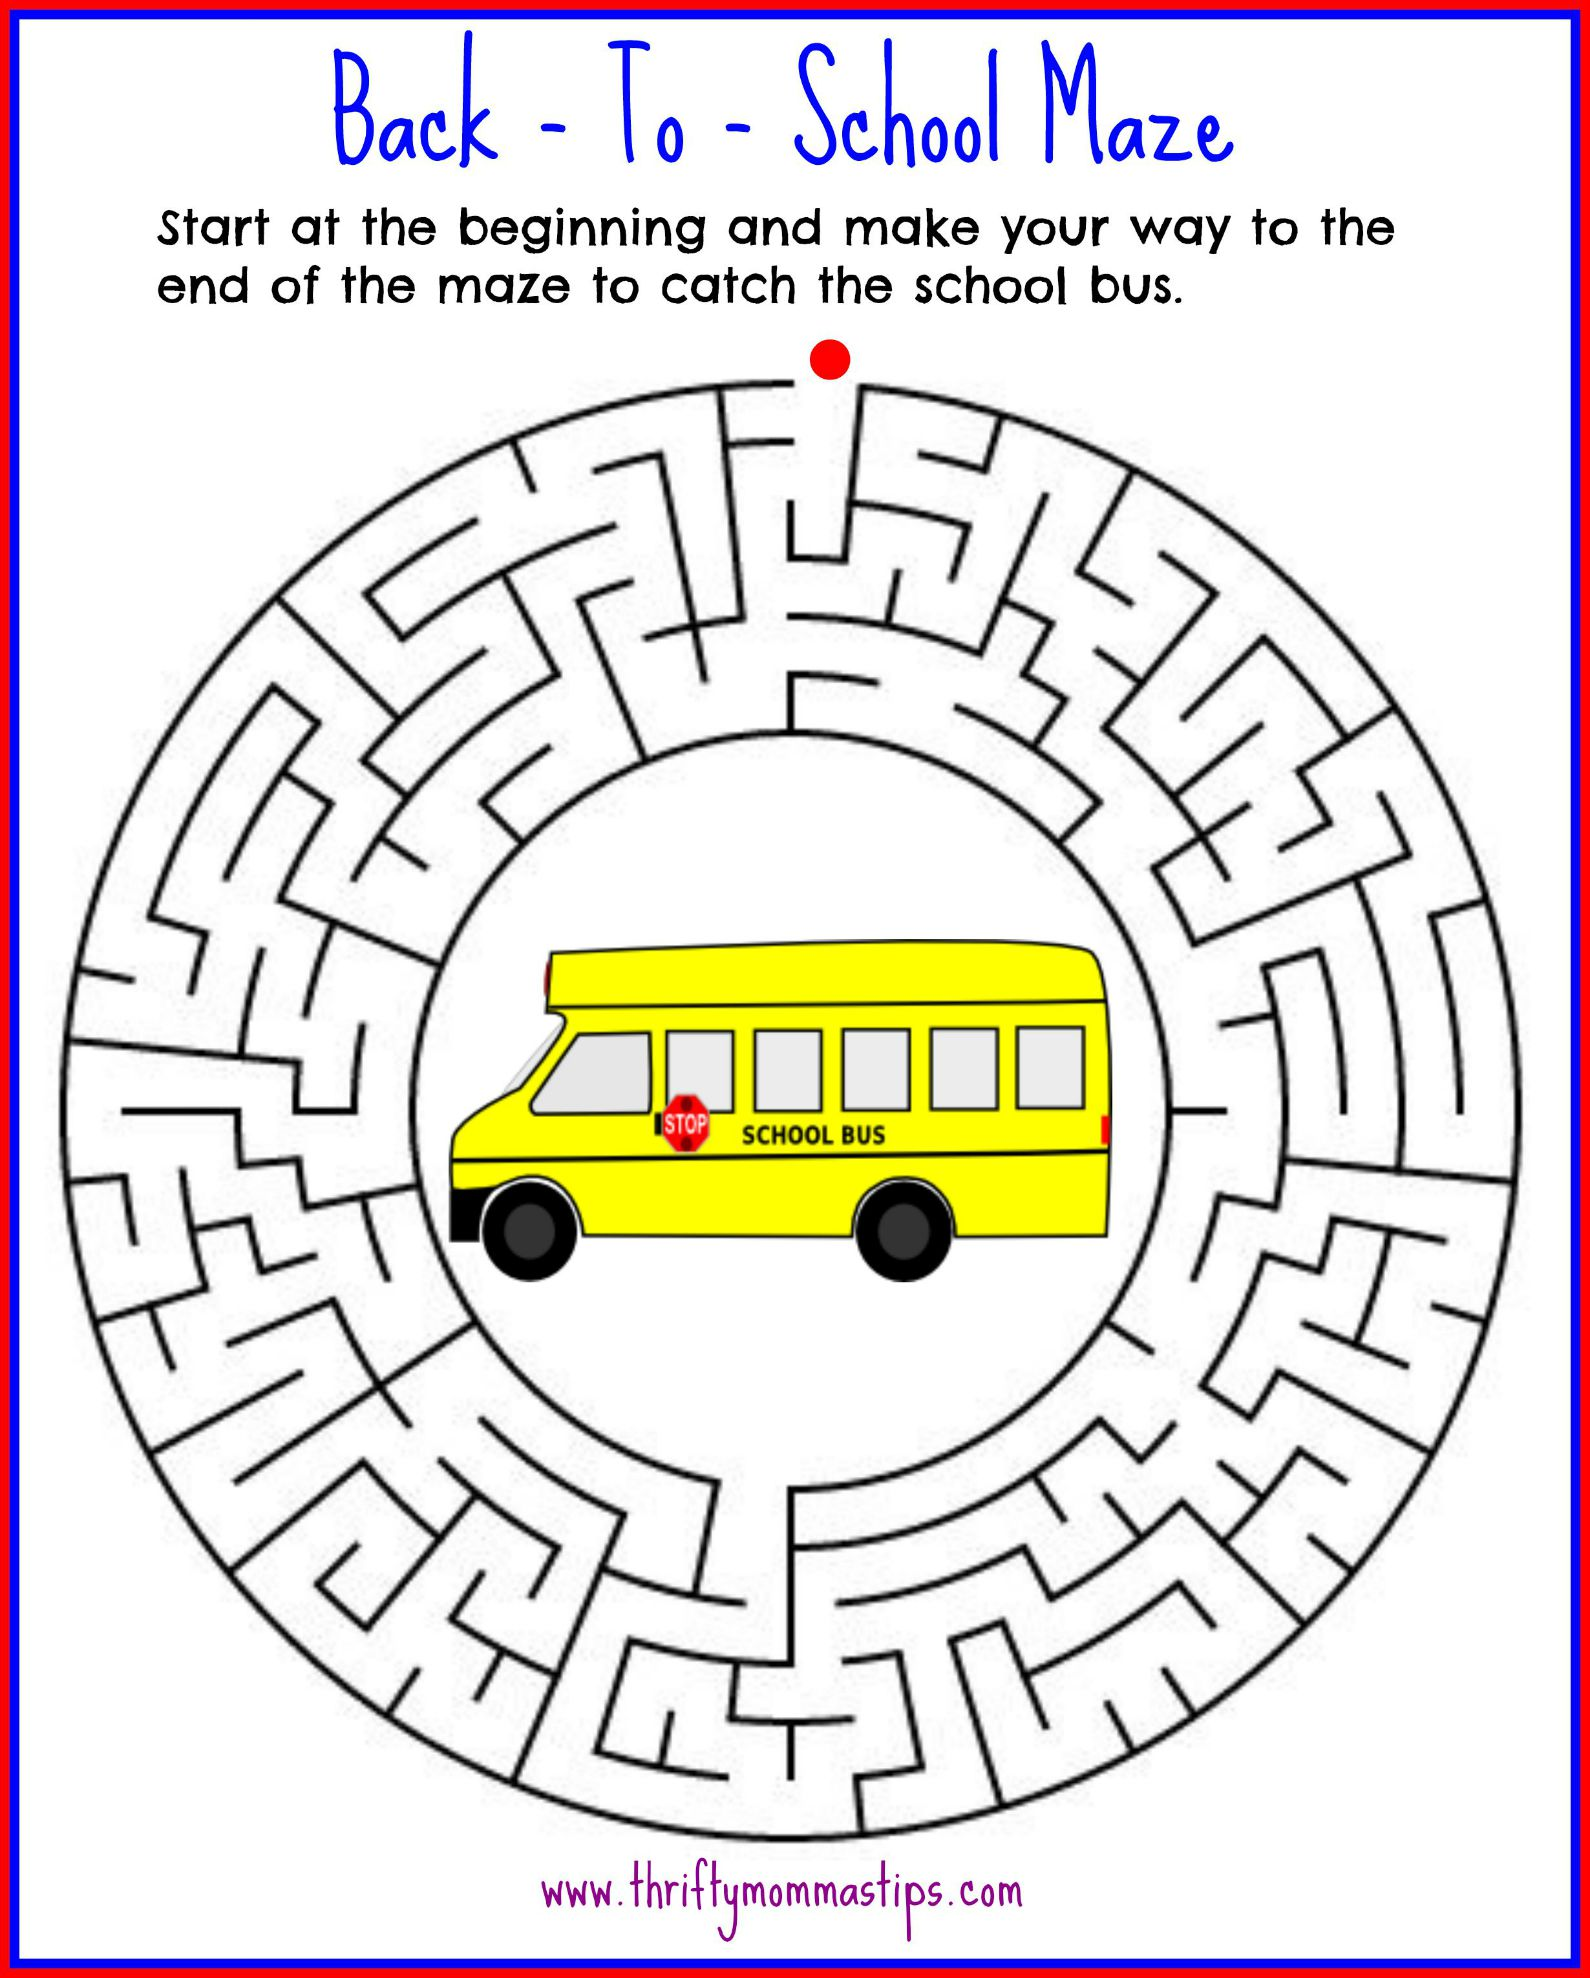 Back To School Maze Printable